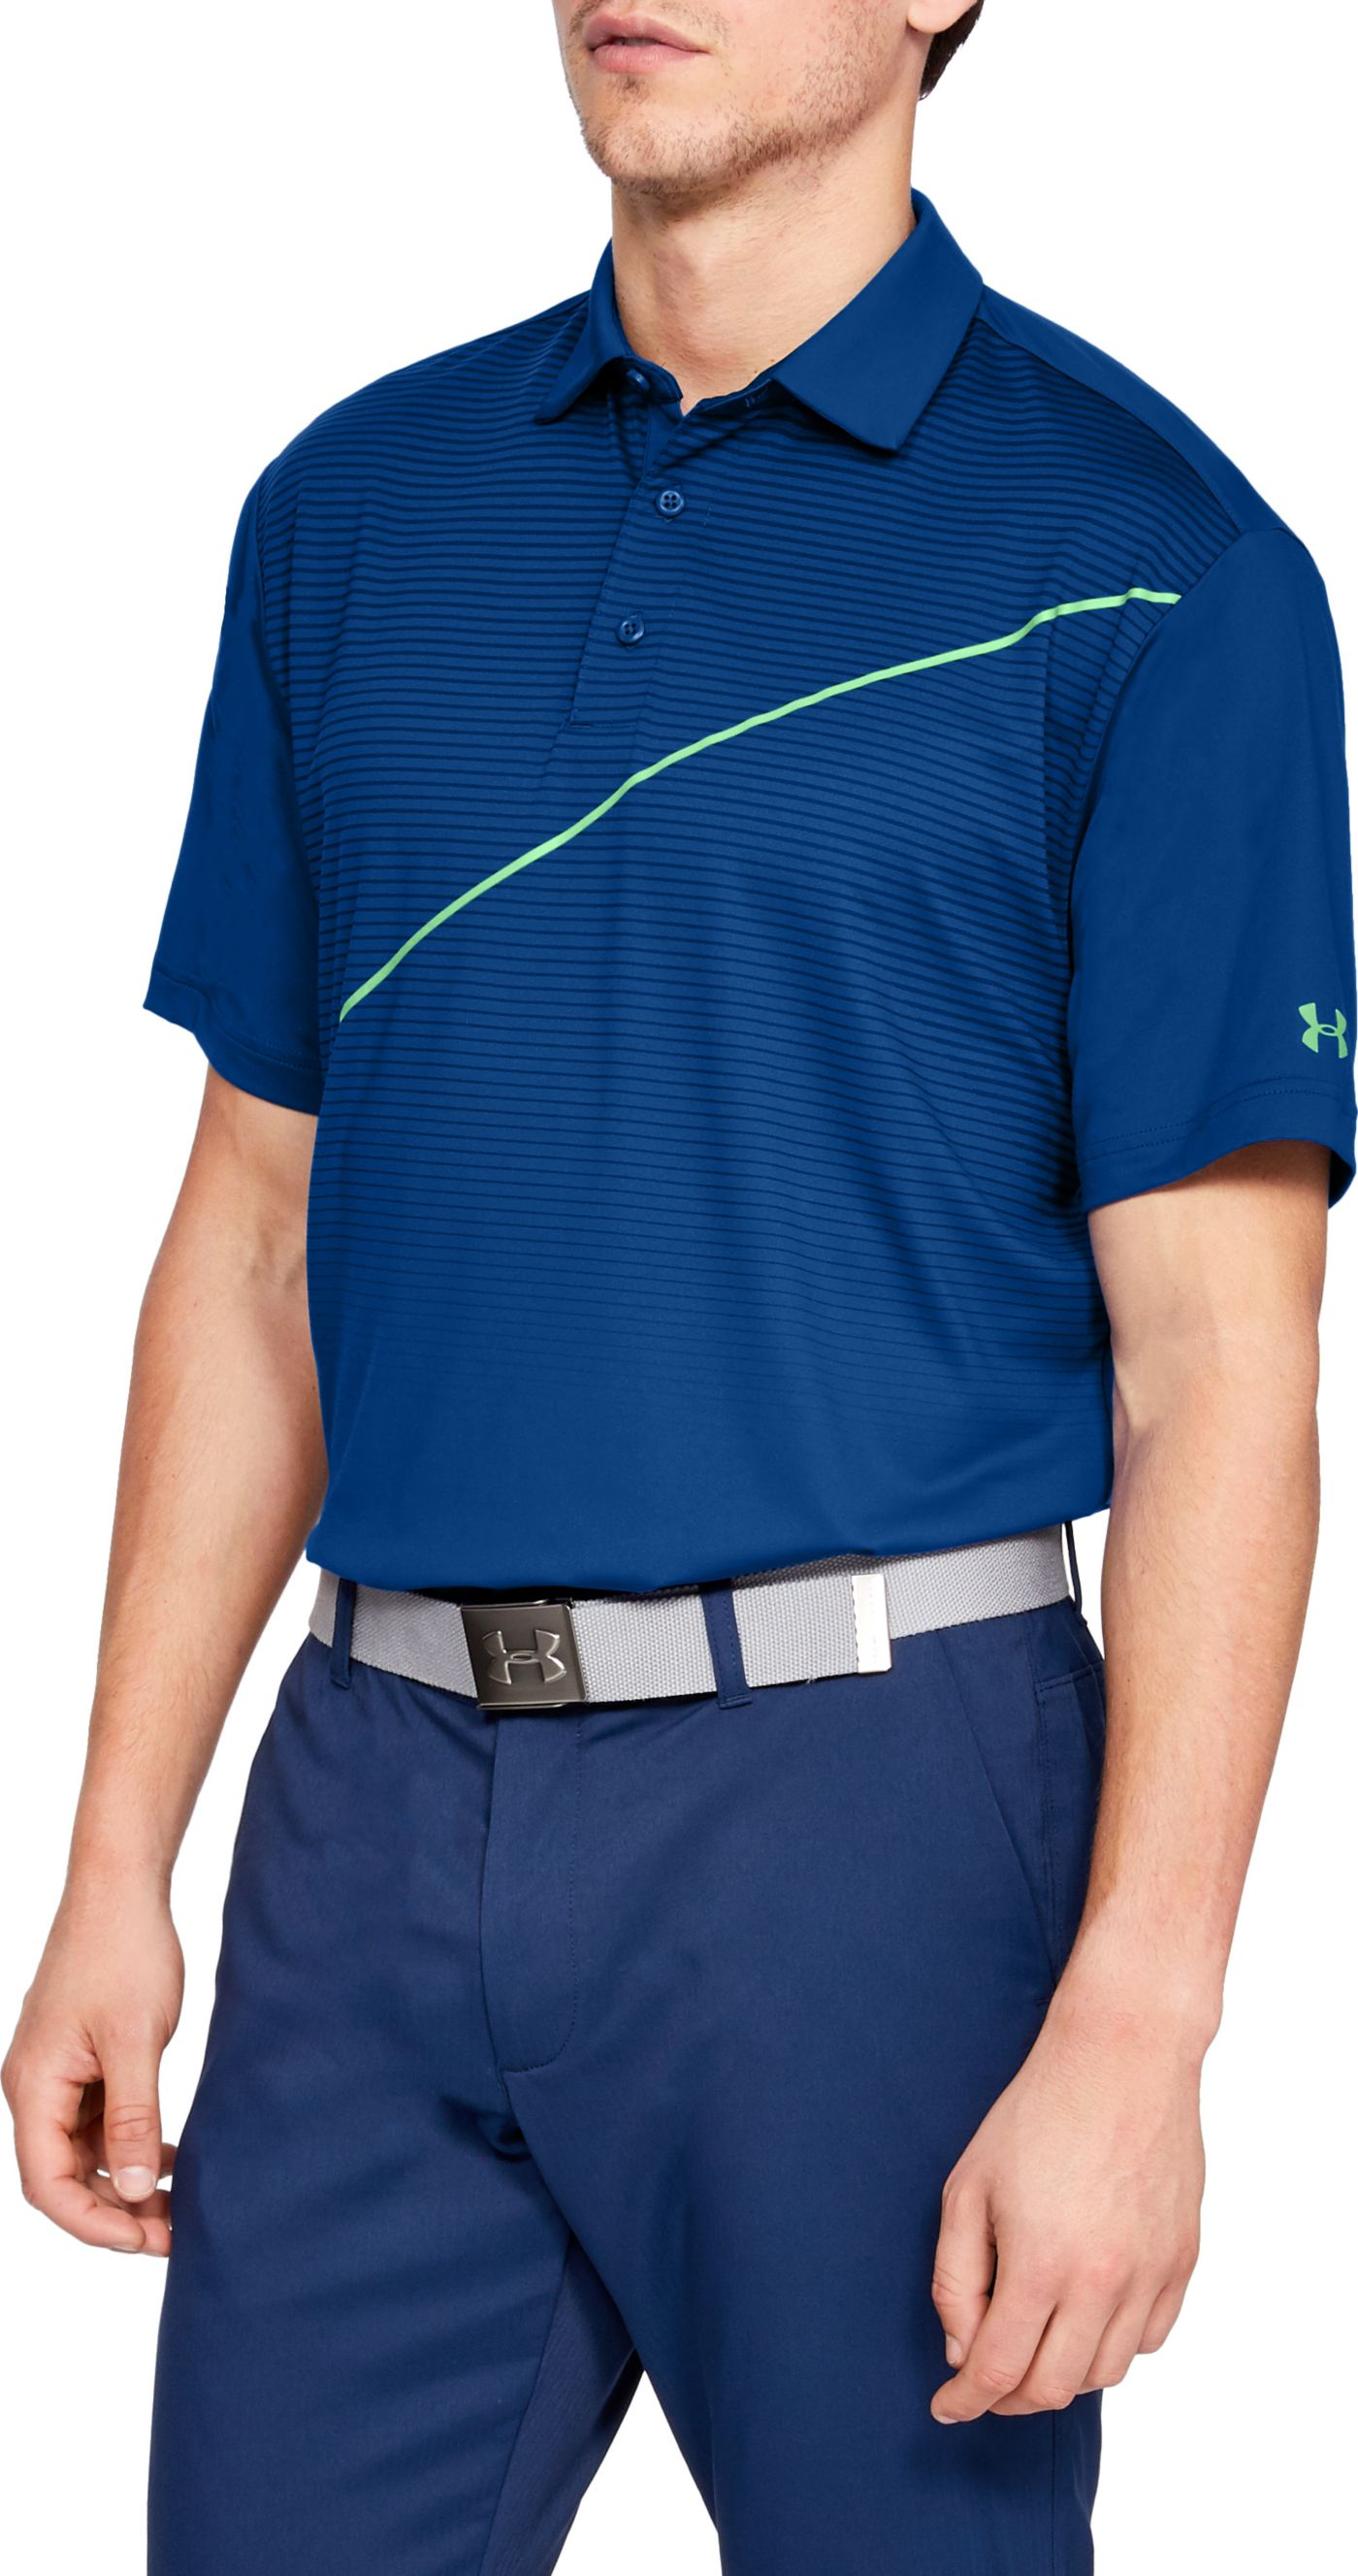 Under Armour Men's Playoff Pitch Golf Polo